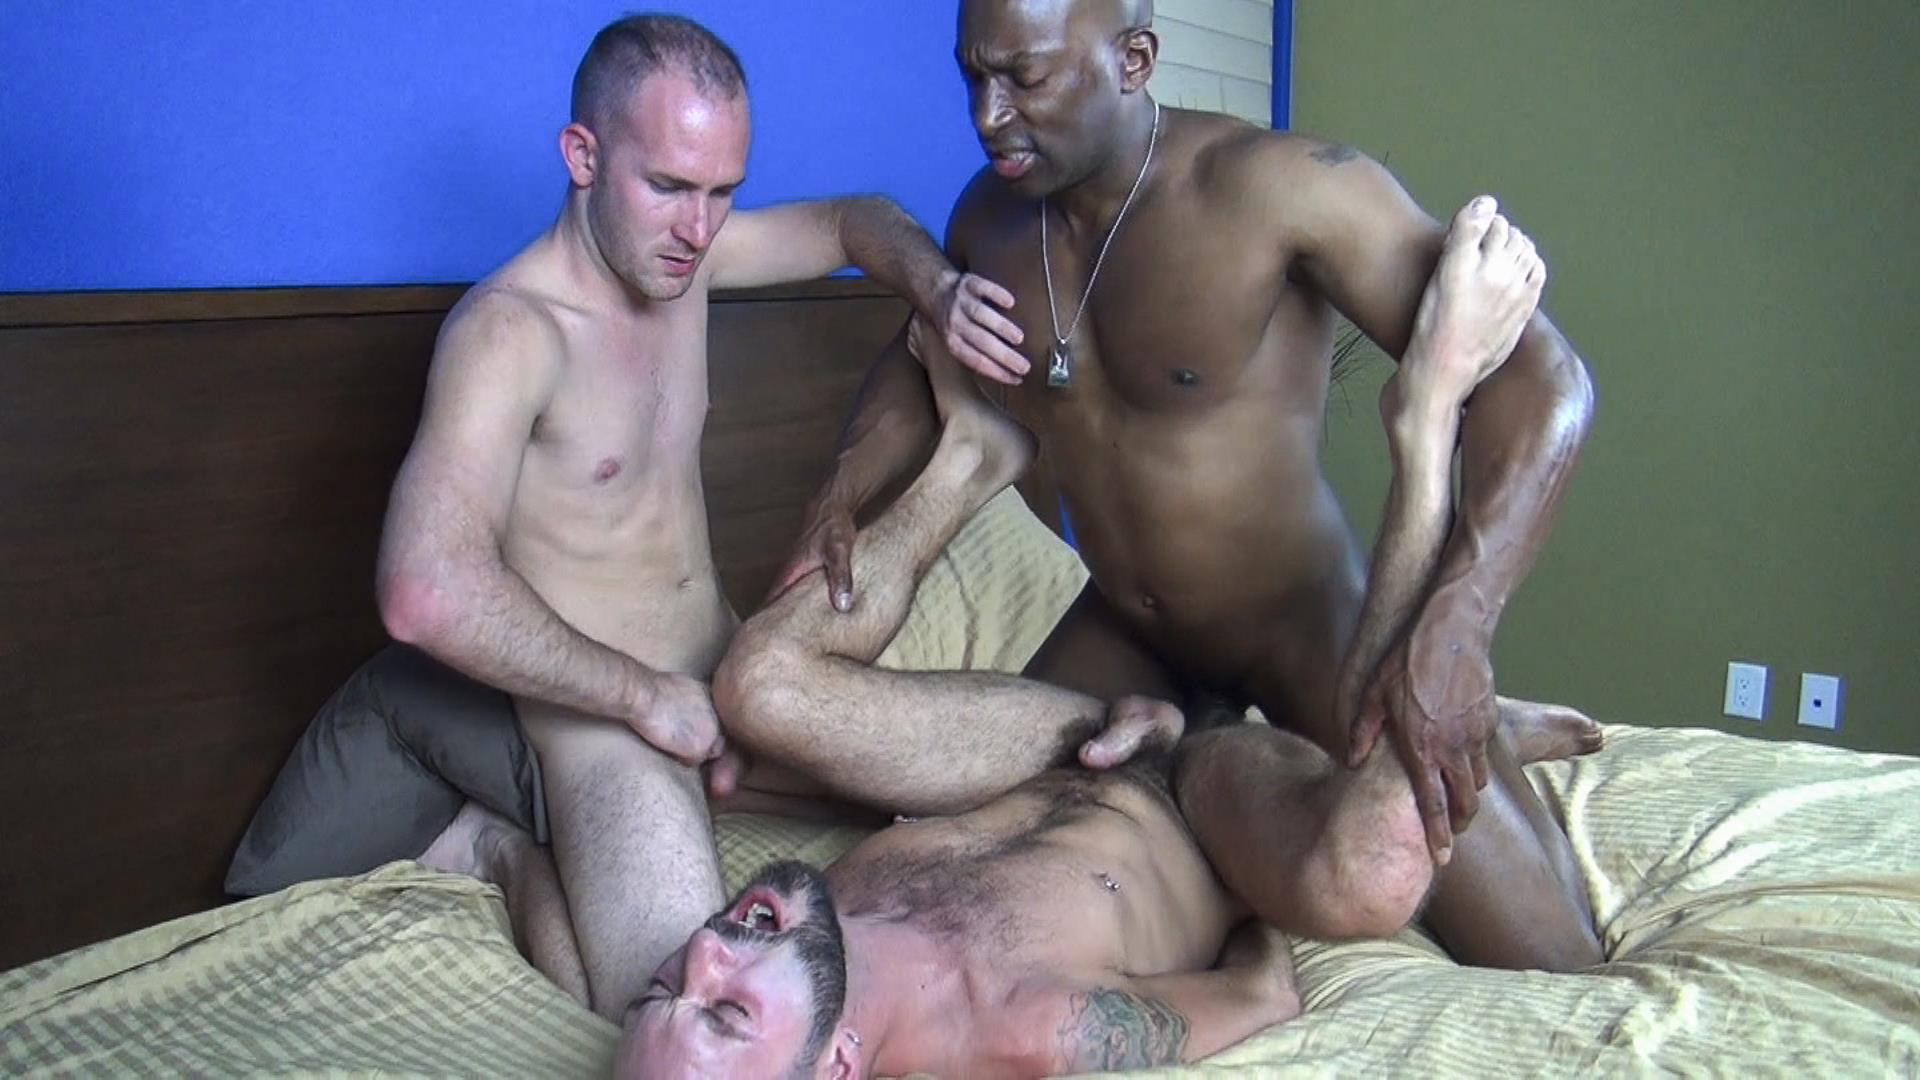 Discovered gay threesome porn movies nice!!!